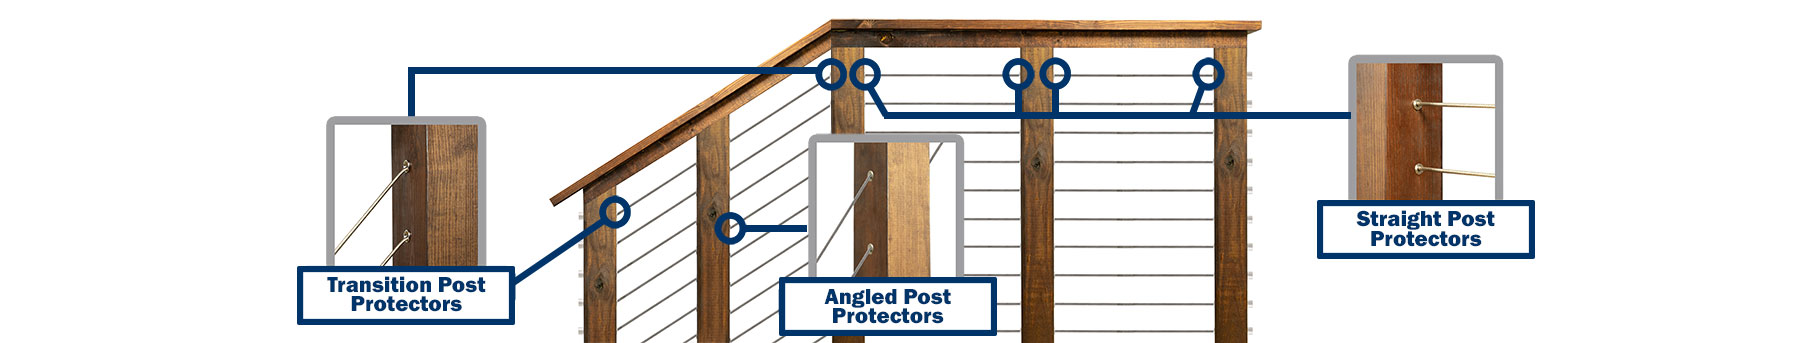 Wood Post Protector Model